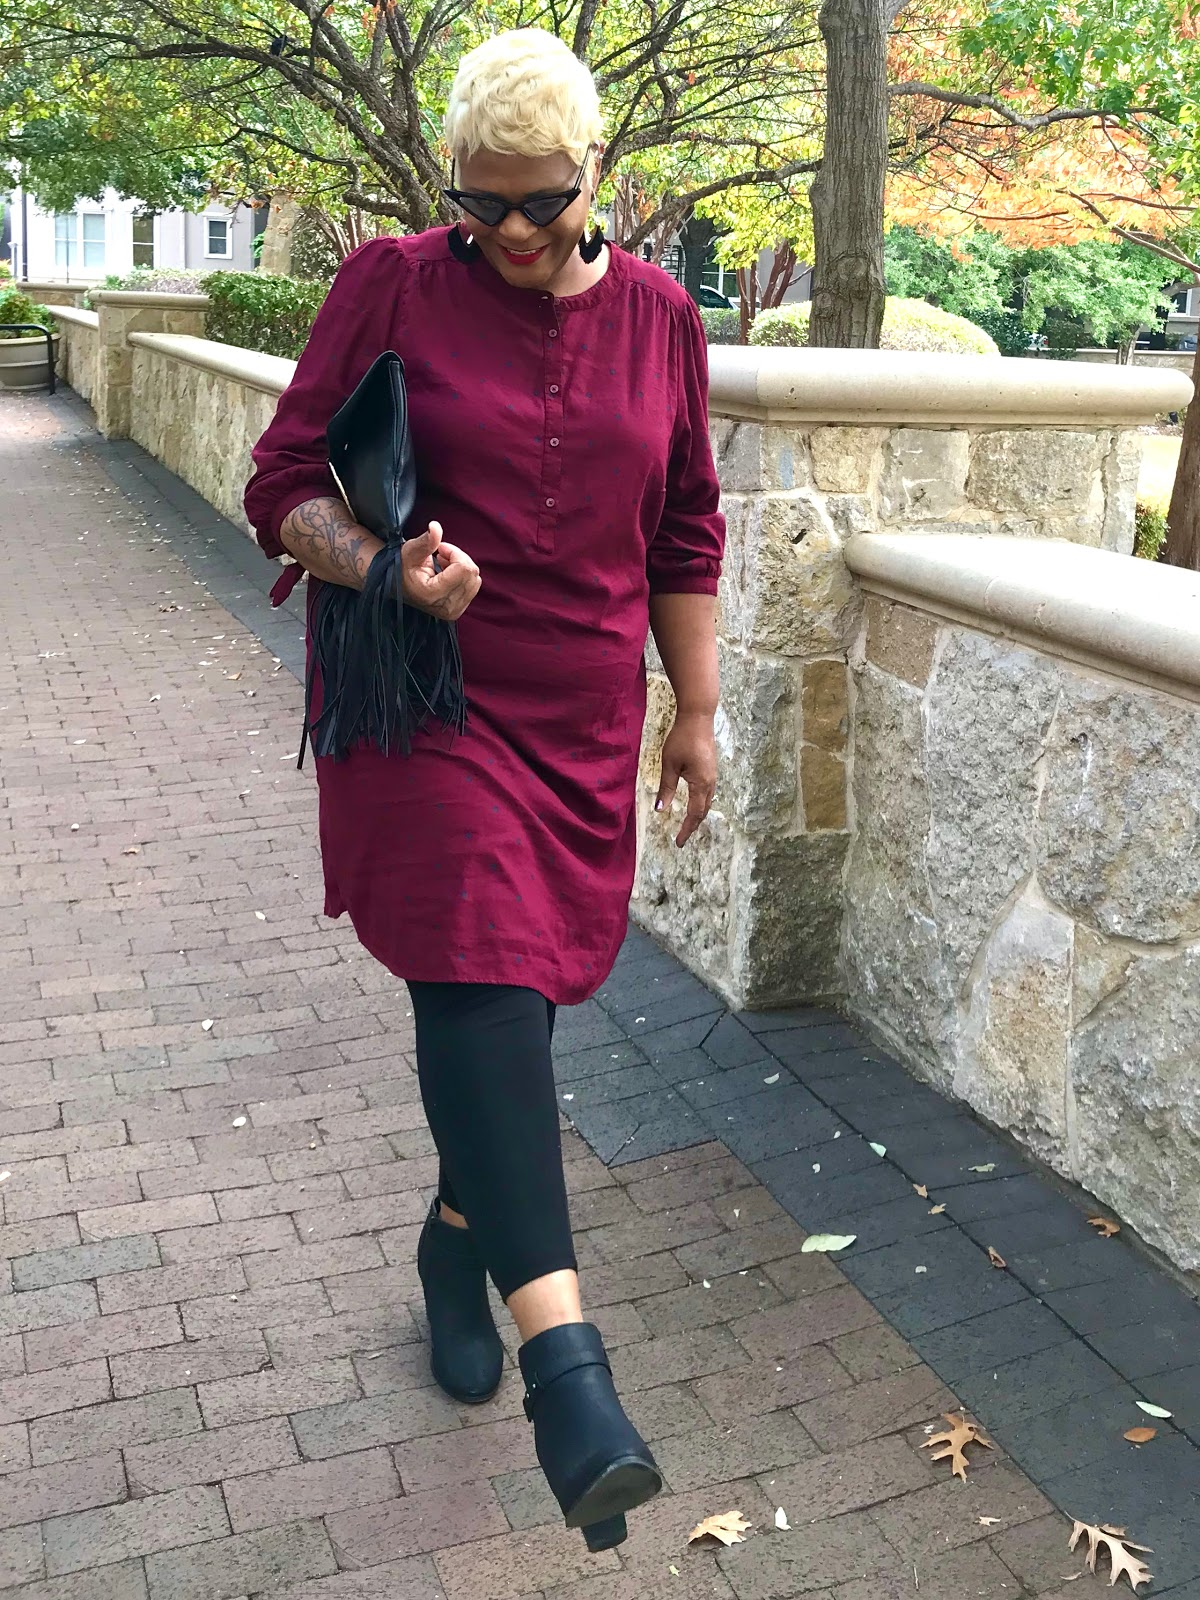 Tangie Bell is showing how she restyled black boots, leggings and shirt dress